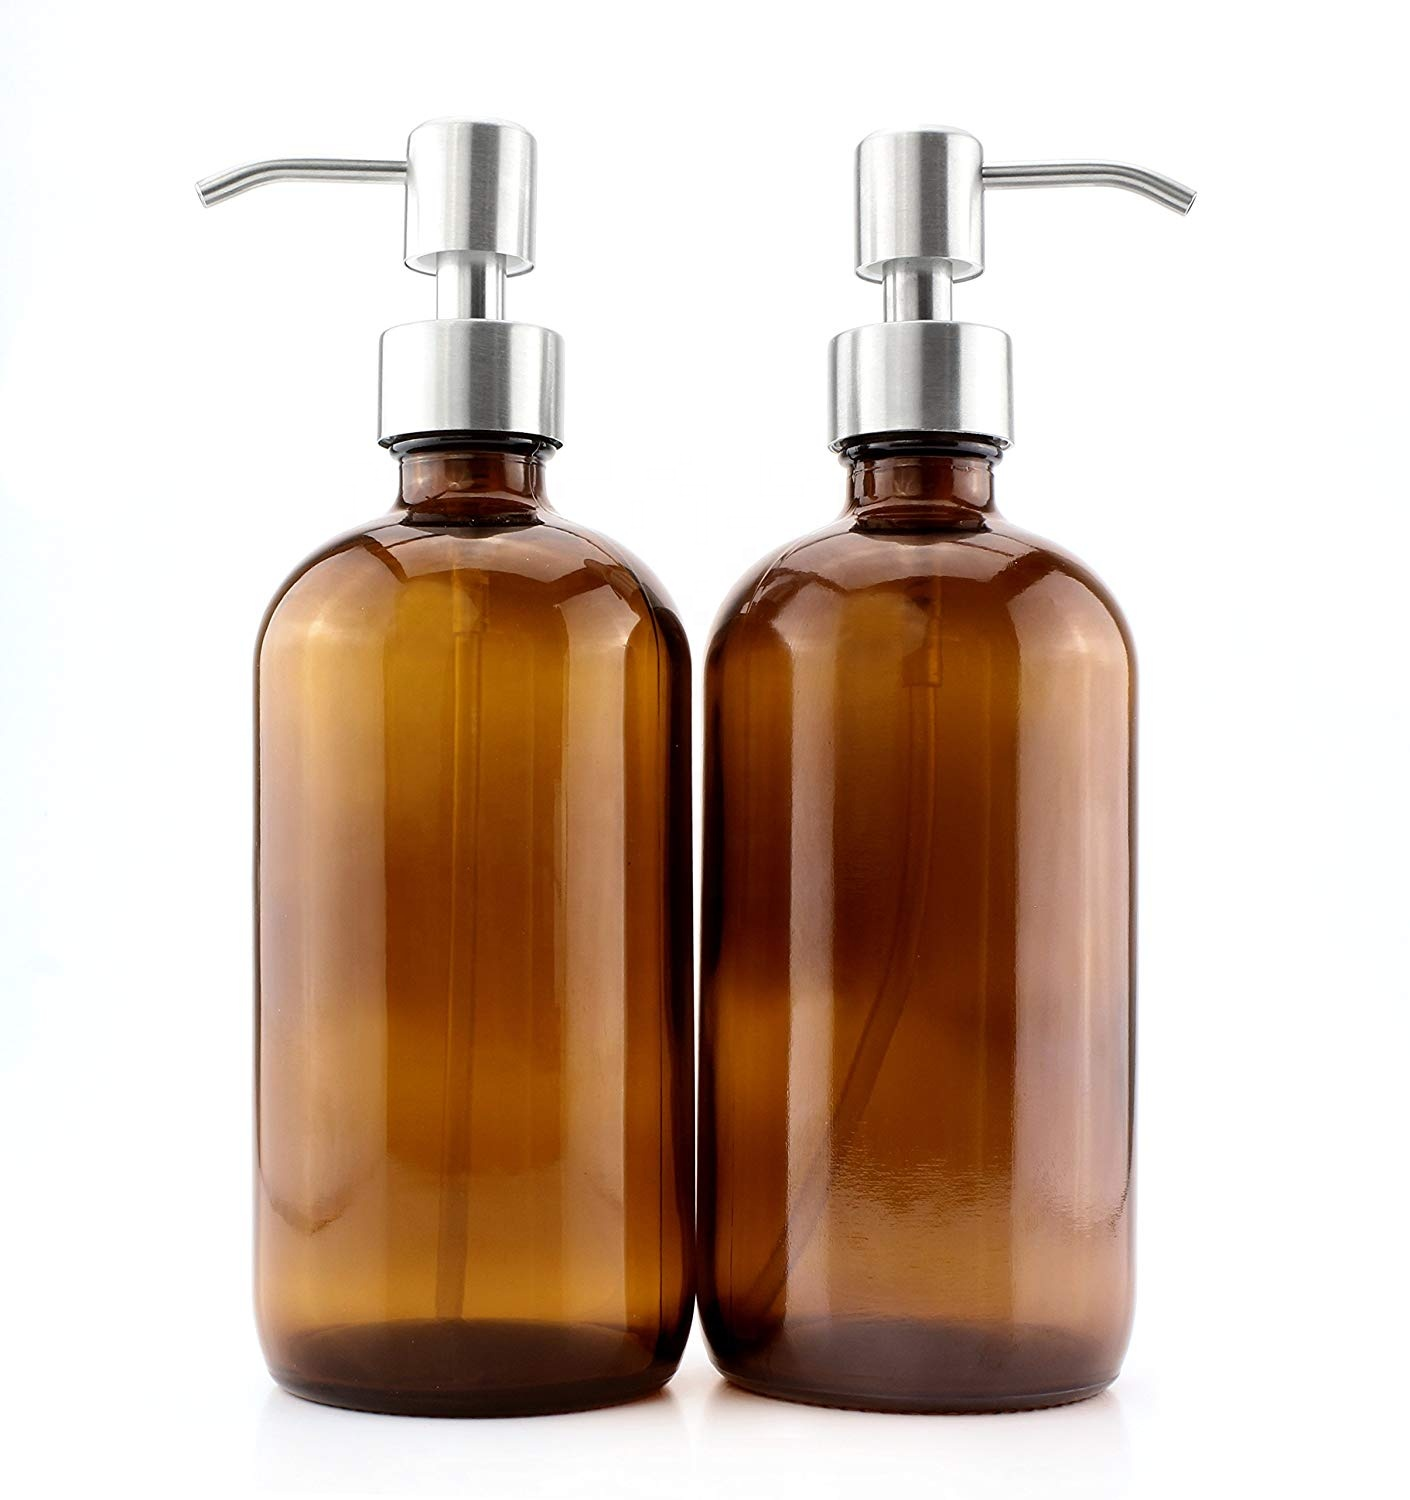 16oz 500ml Amber Glass Bottle Empty Shampoo Bottles for Sale with Stainless Steel Pump Lid